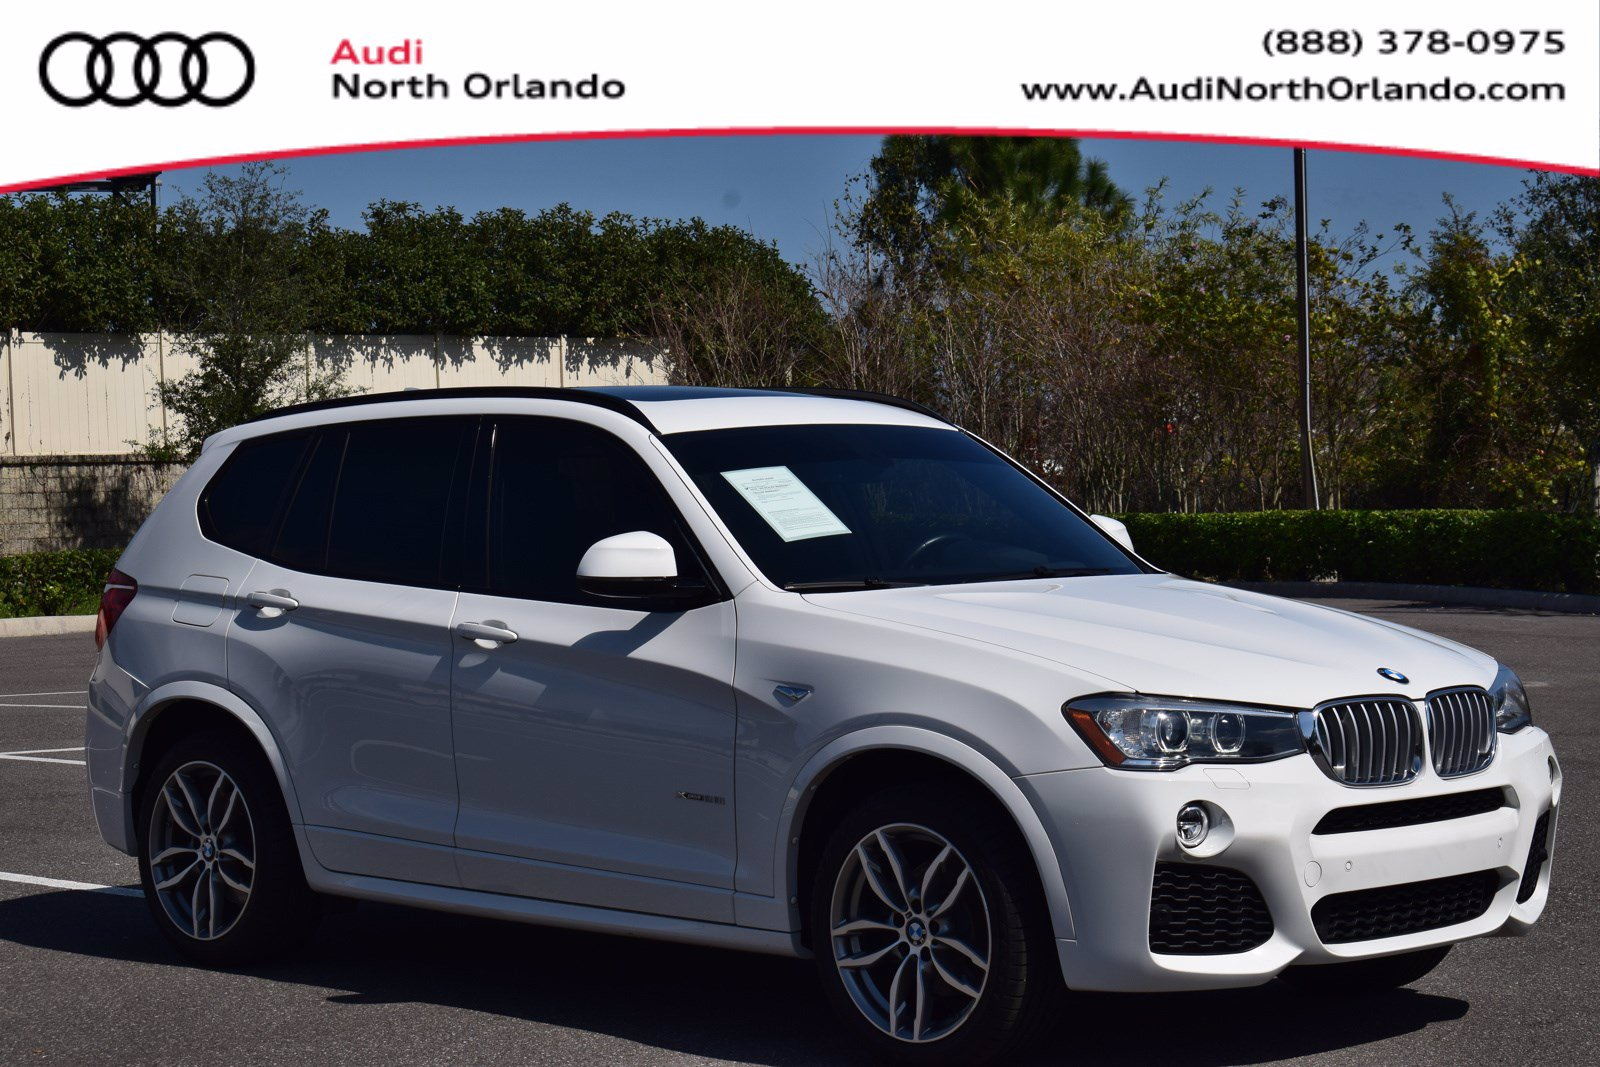 Used Bmw X3 Sanford Fl